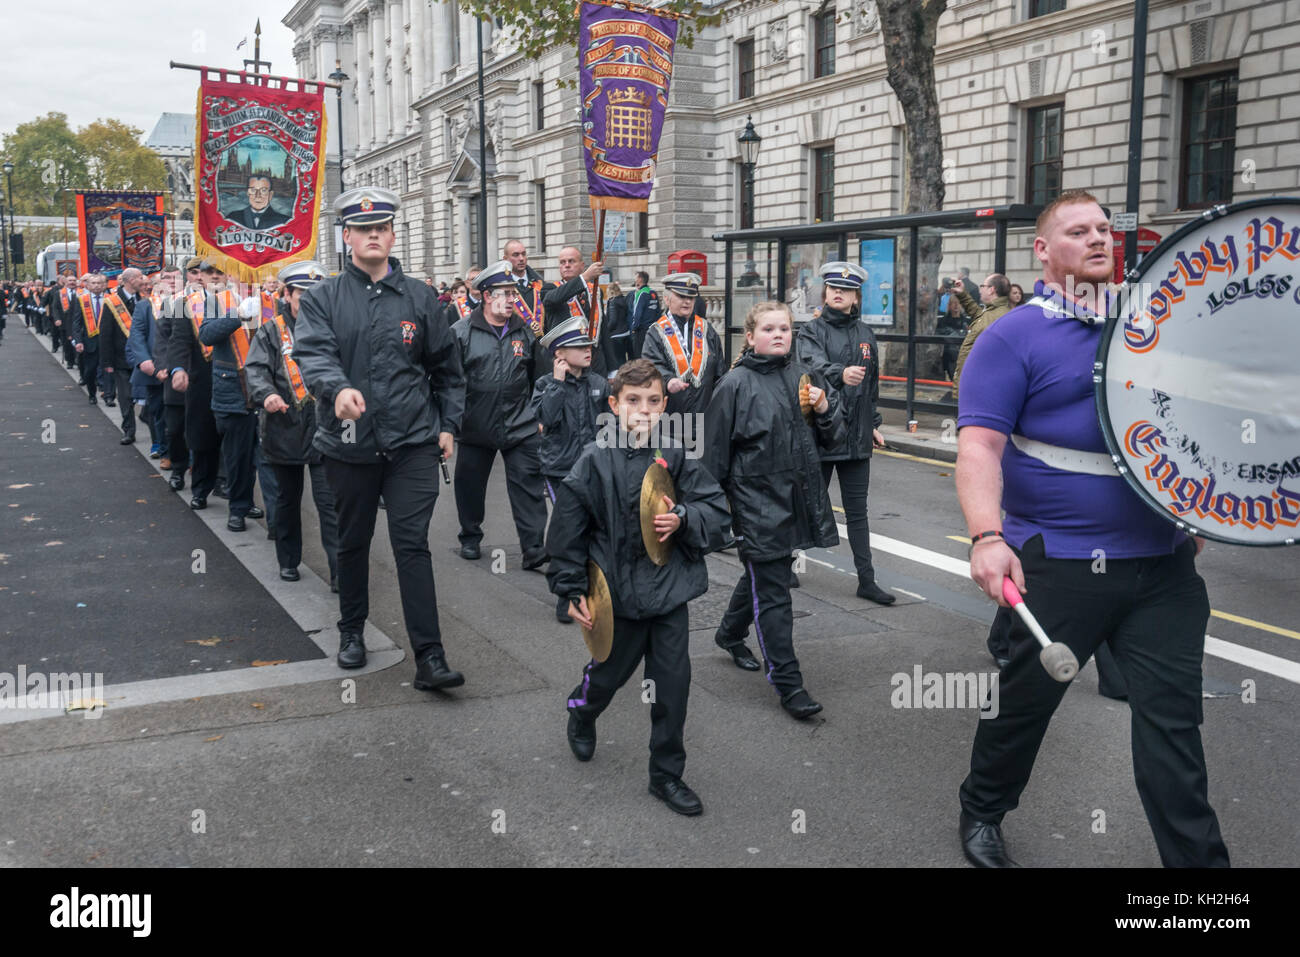 London, UK. 11th November 2017. London City District No 63 and the Houses of Parliament Lodge march along Whitehall - Stock Image